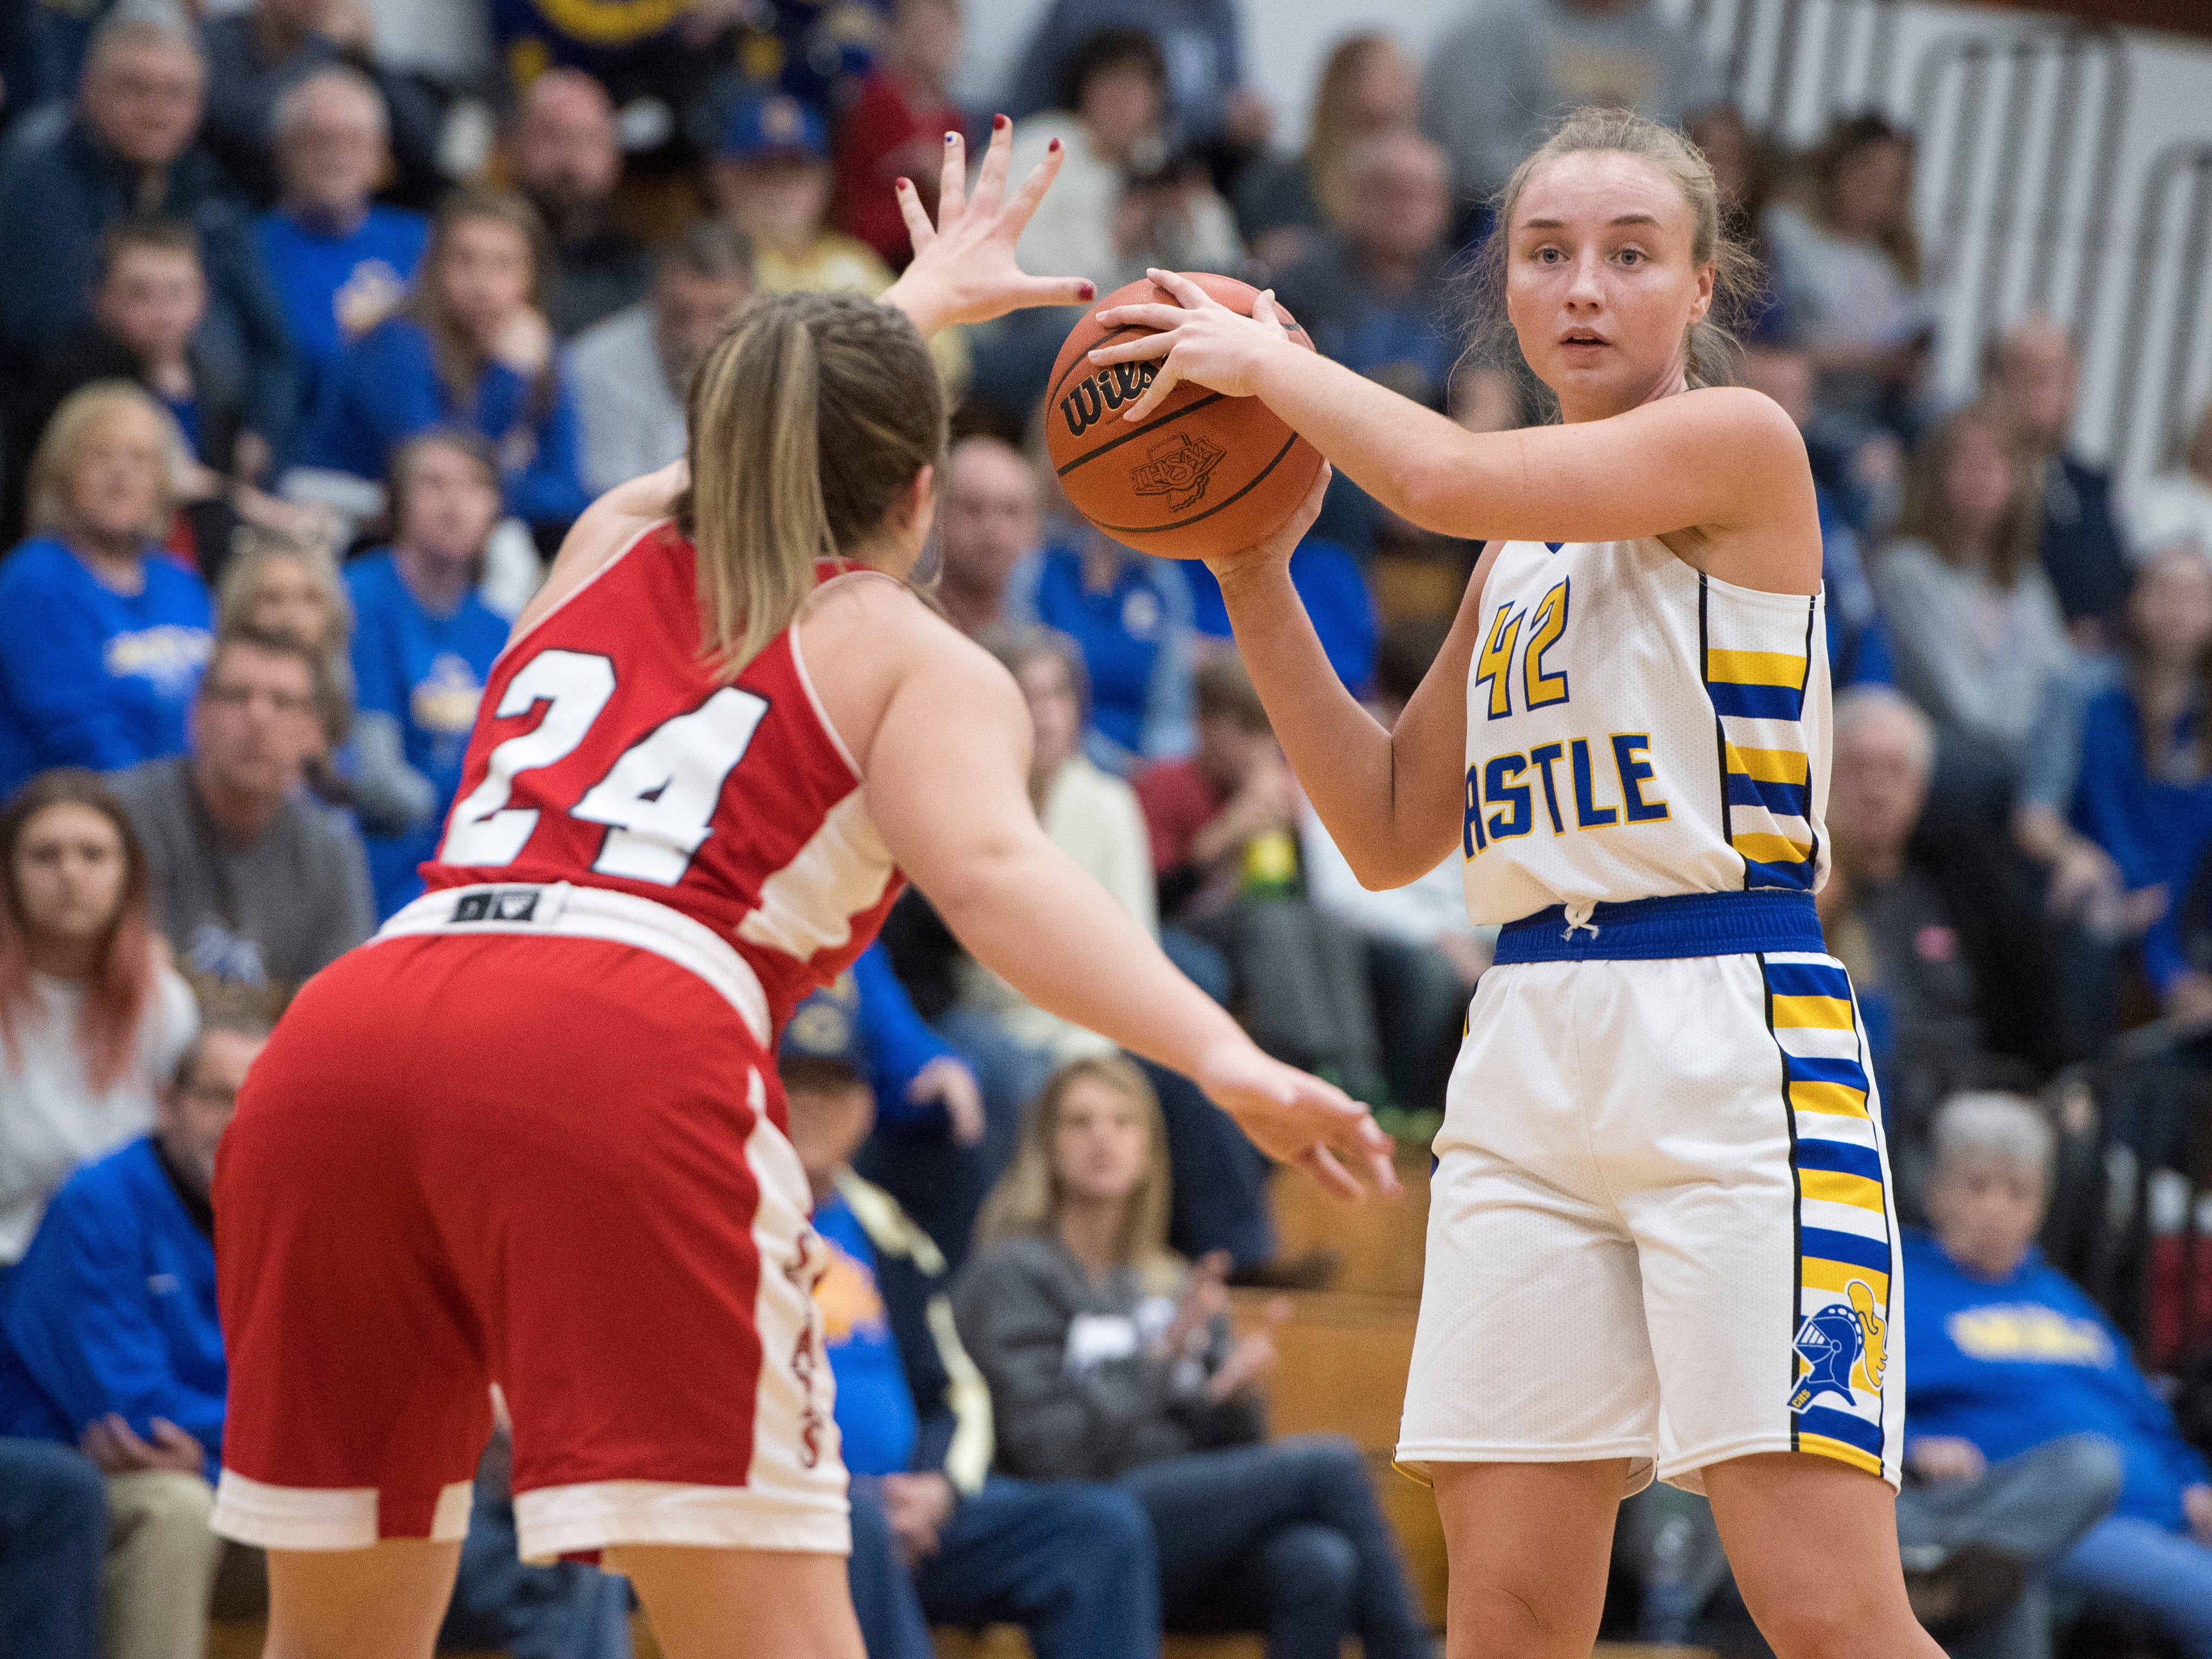 Castle's Josie Freeman (42) passes the ball during the  IHSAA Girls Basketball Class 4A Regional Championship game against the Bedford North Lawrence Lady Stars at the Stars Field House in Bedford, Ind. Saturday, Feb. 9, 2019.